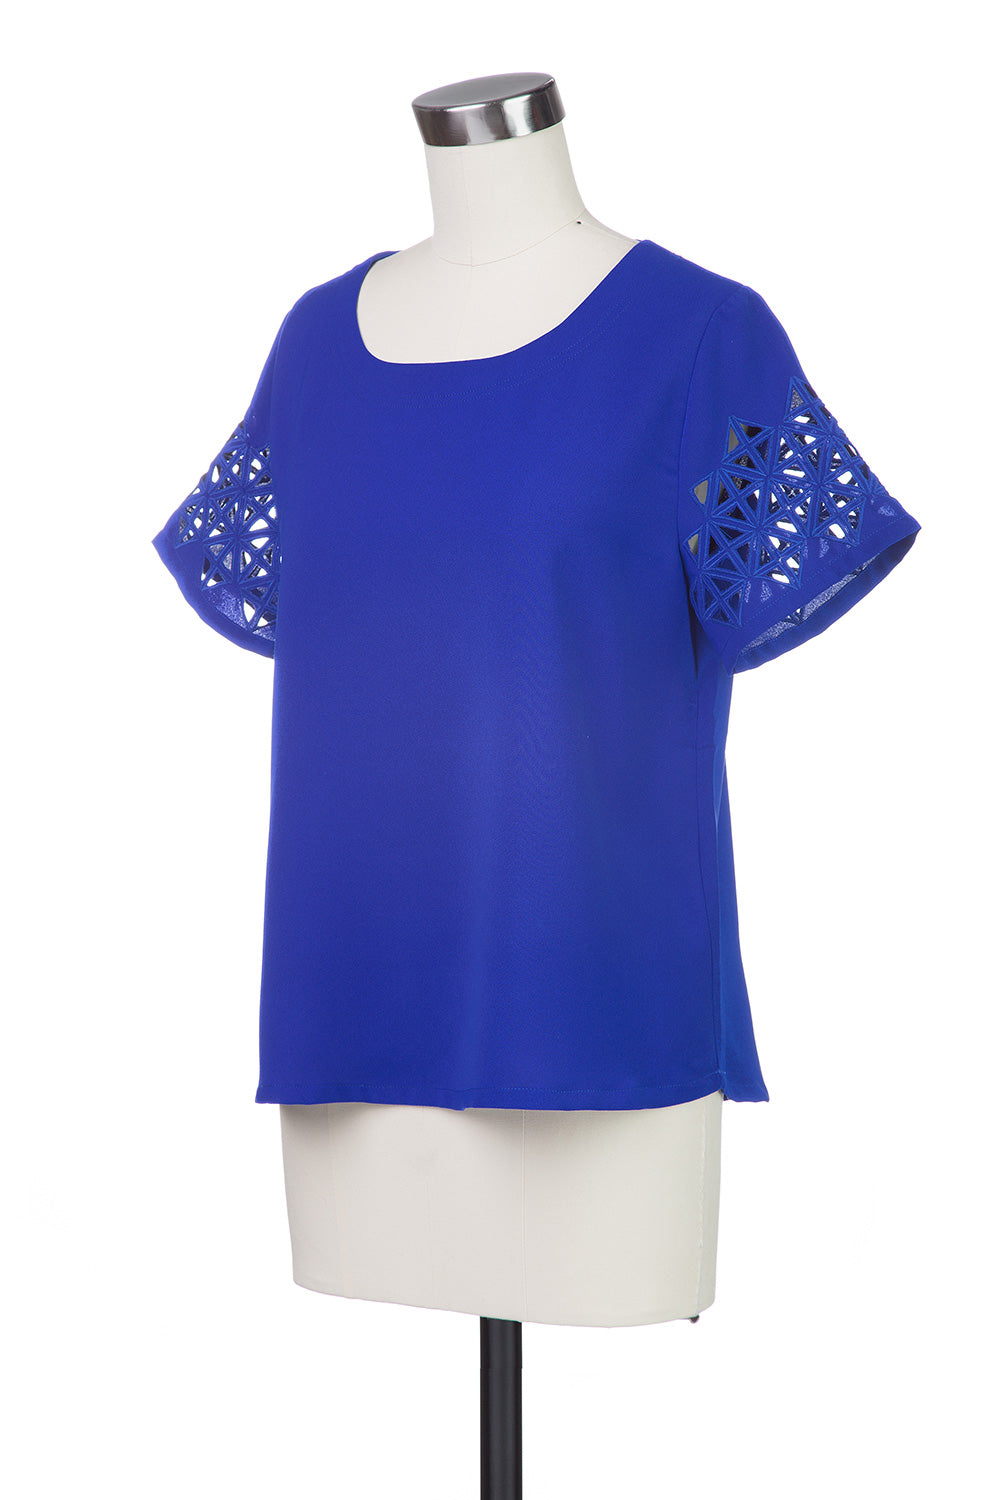 Type 4 Cut it Out Top in Cobalt